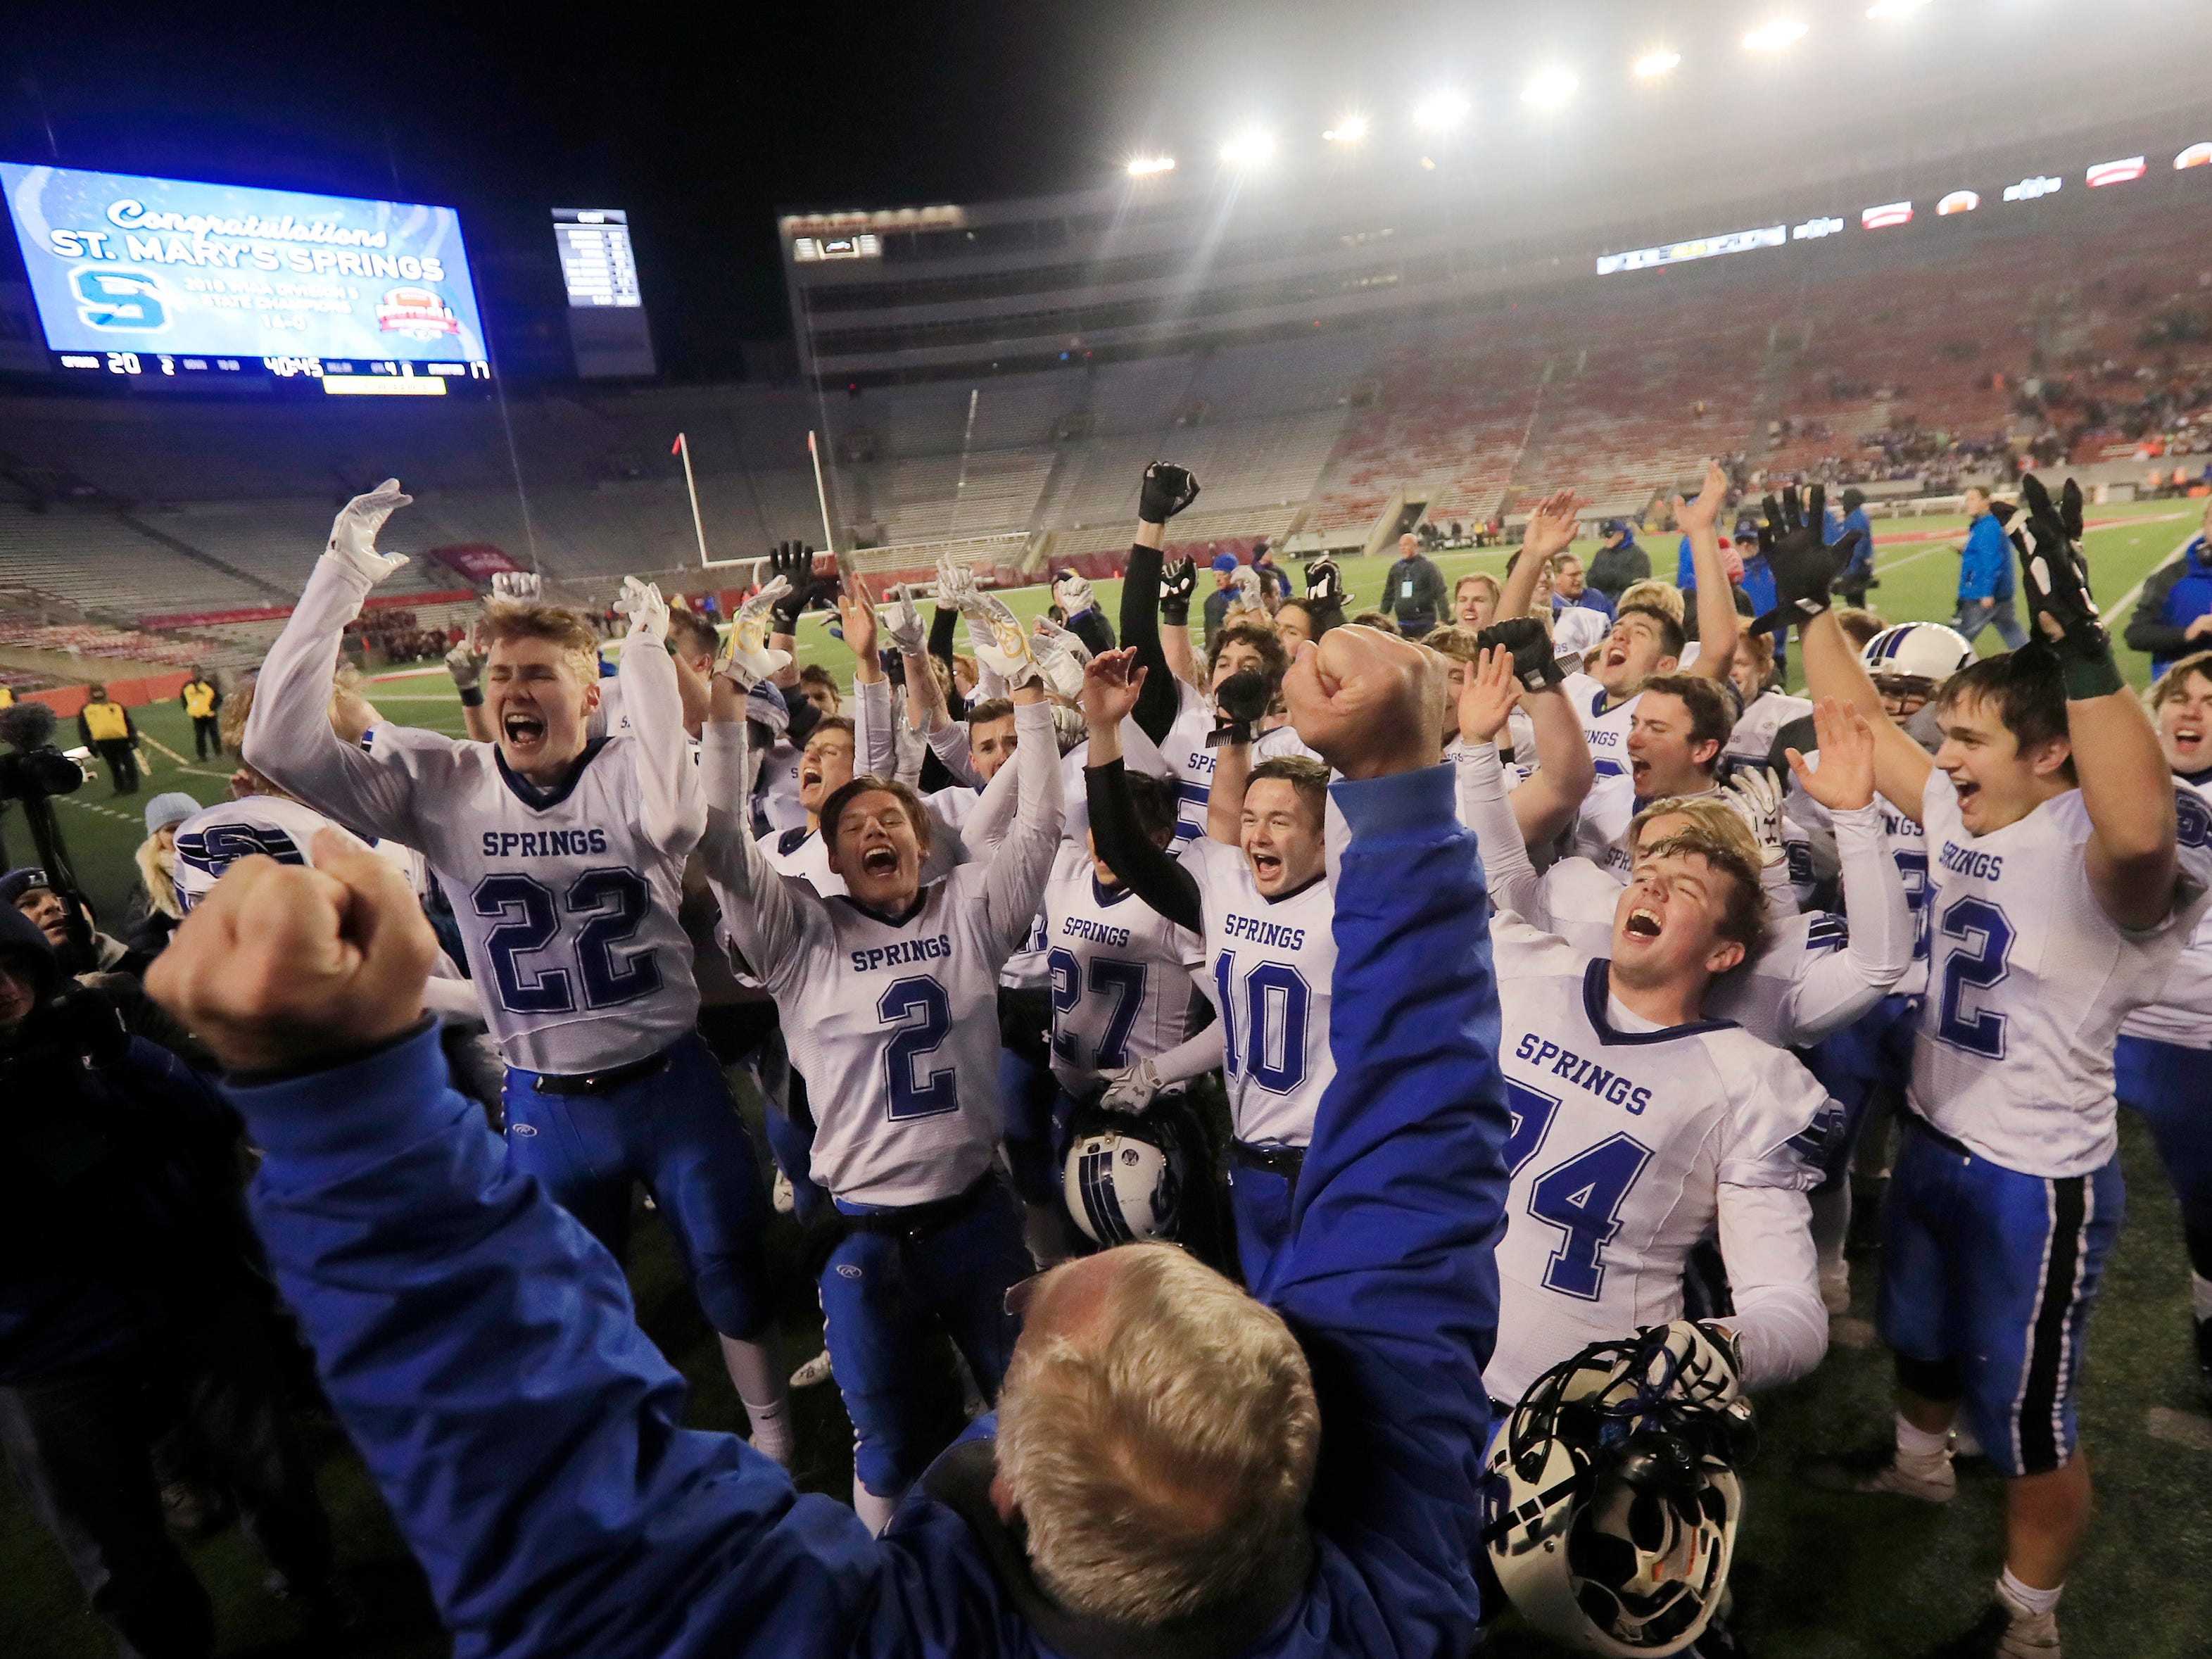 St Mary's Springs Academy players celebrate after defeating Stratford 20-17 in the WIAA Division 5 championship game at Camp Randall Stadium on Thursday, November 15, 2018 in Madison, Wis.